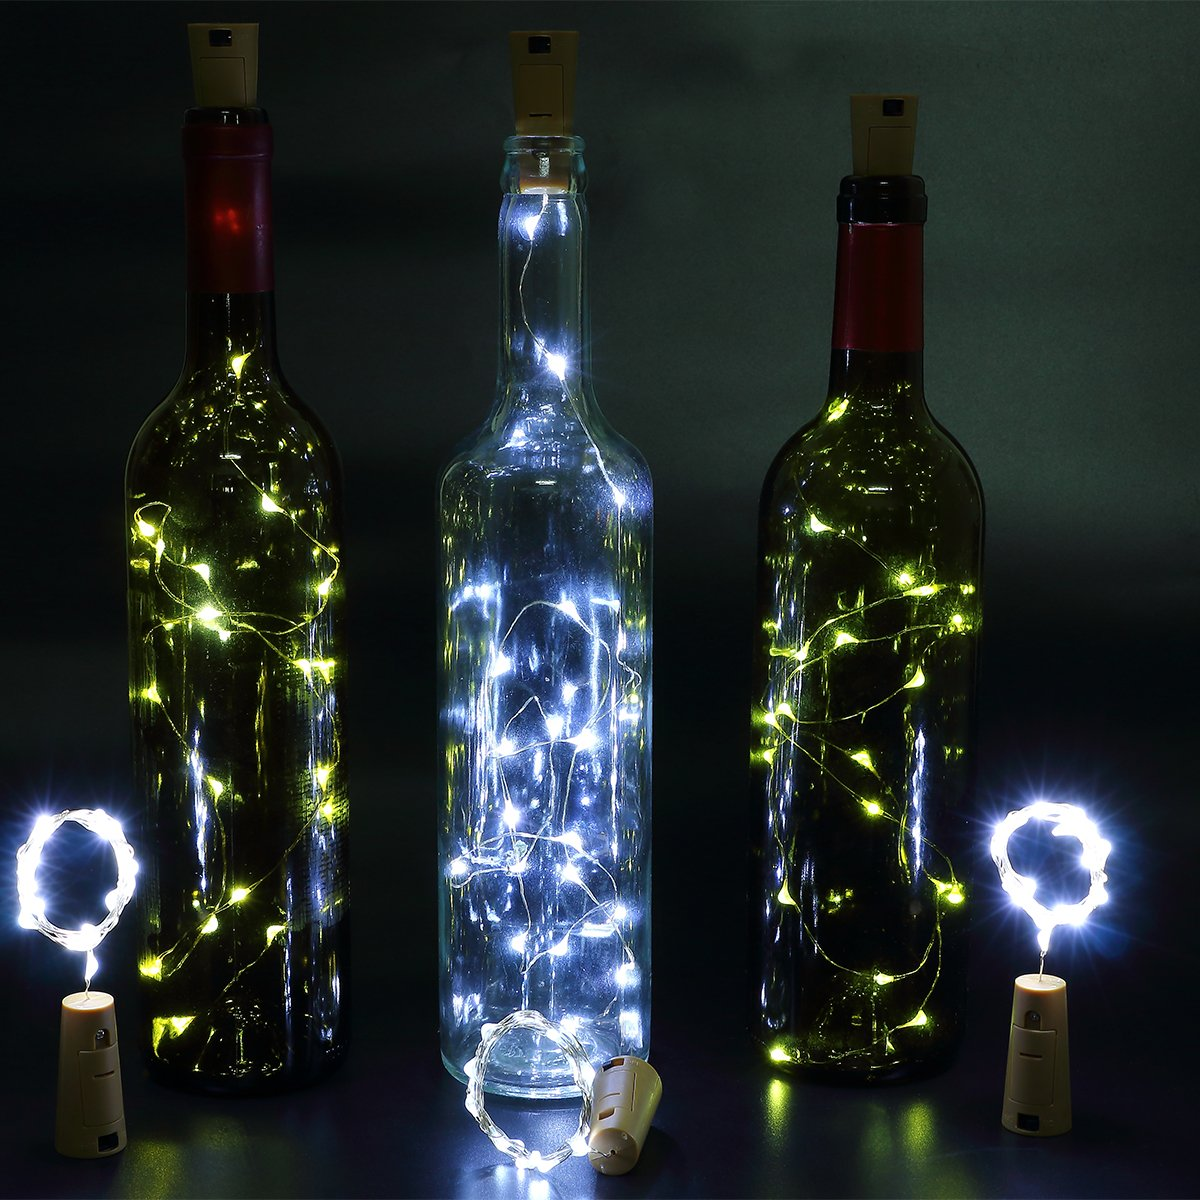 Zulux 6pcs Bottle Lights – 39 inch 20 LED Lights Bottles, Wine Glass Light Bottle DIY, Party, Decor, Christmas, Halloween, Wedding (White)